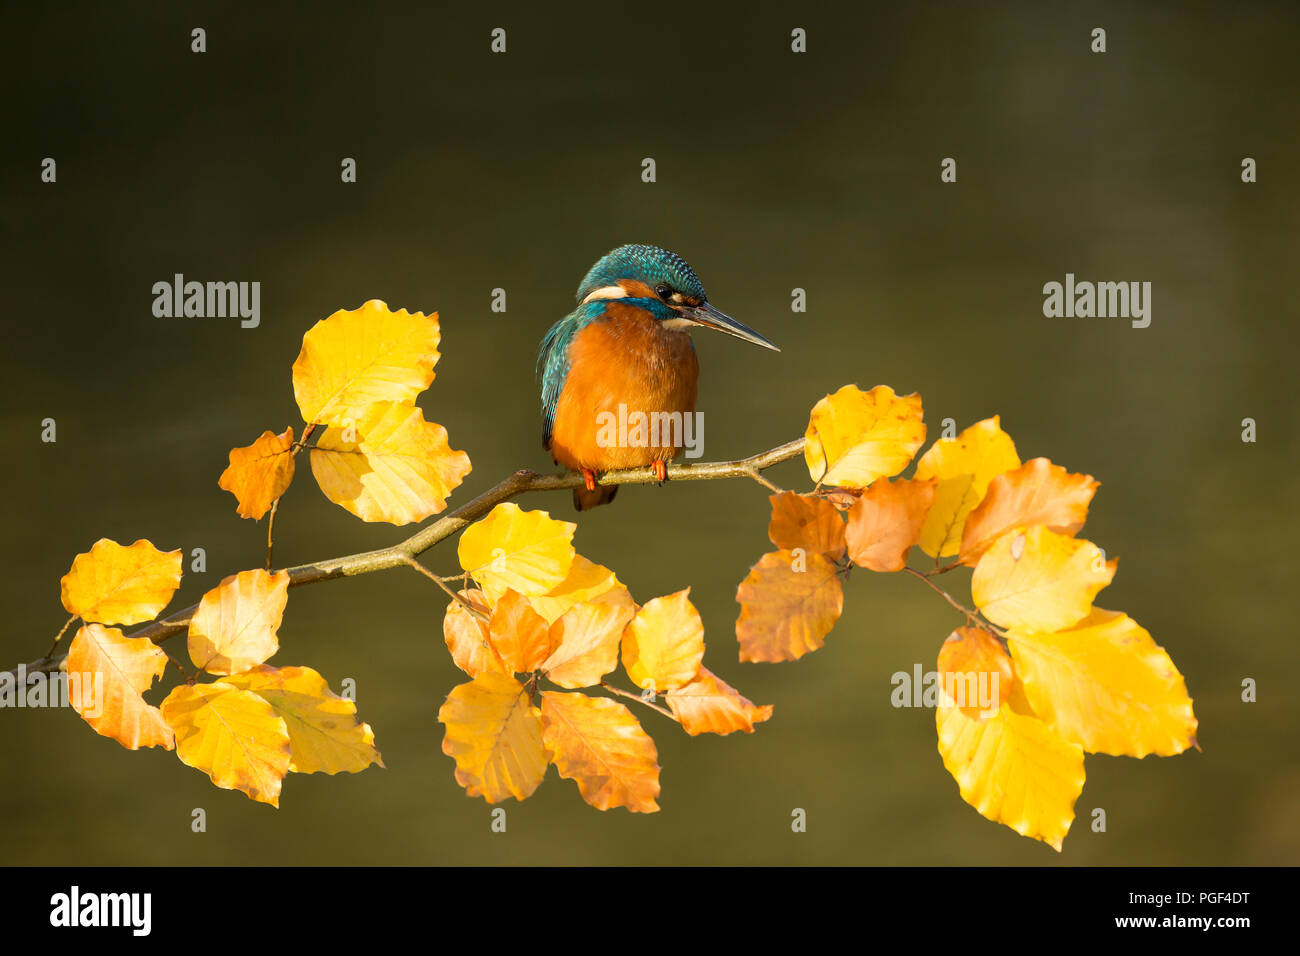 Kingfisher (Alcedo atthis) perched on an Autumn branch - Stock Image